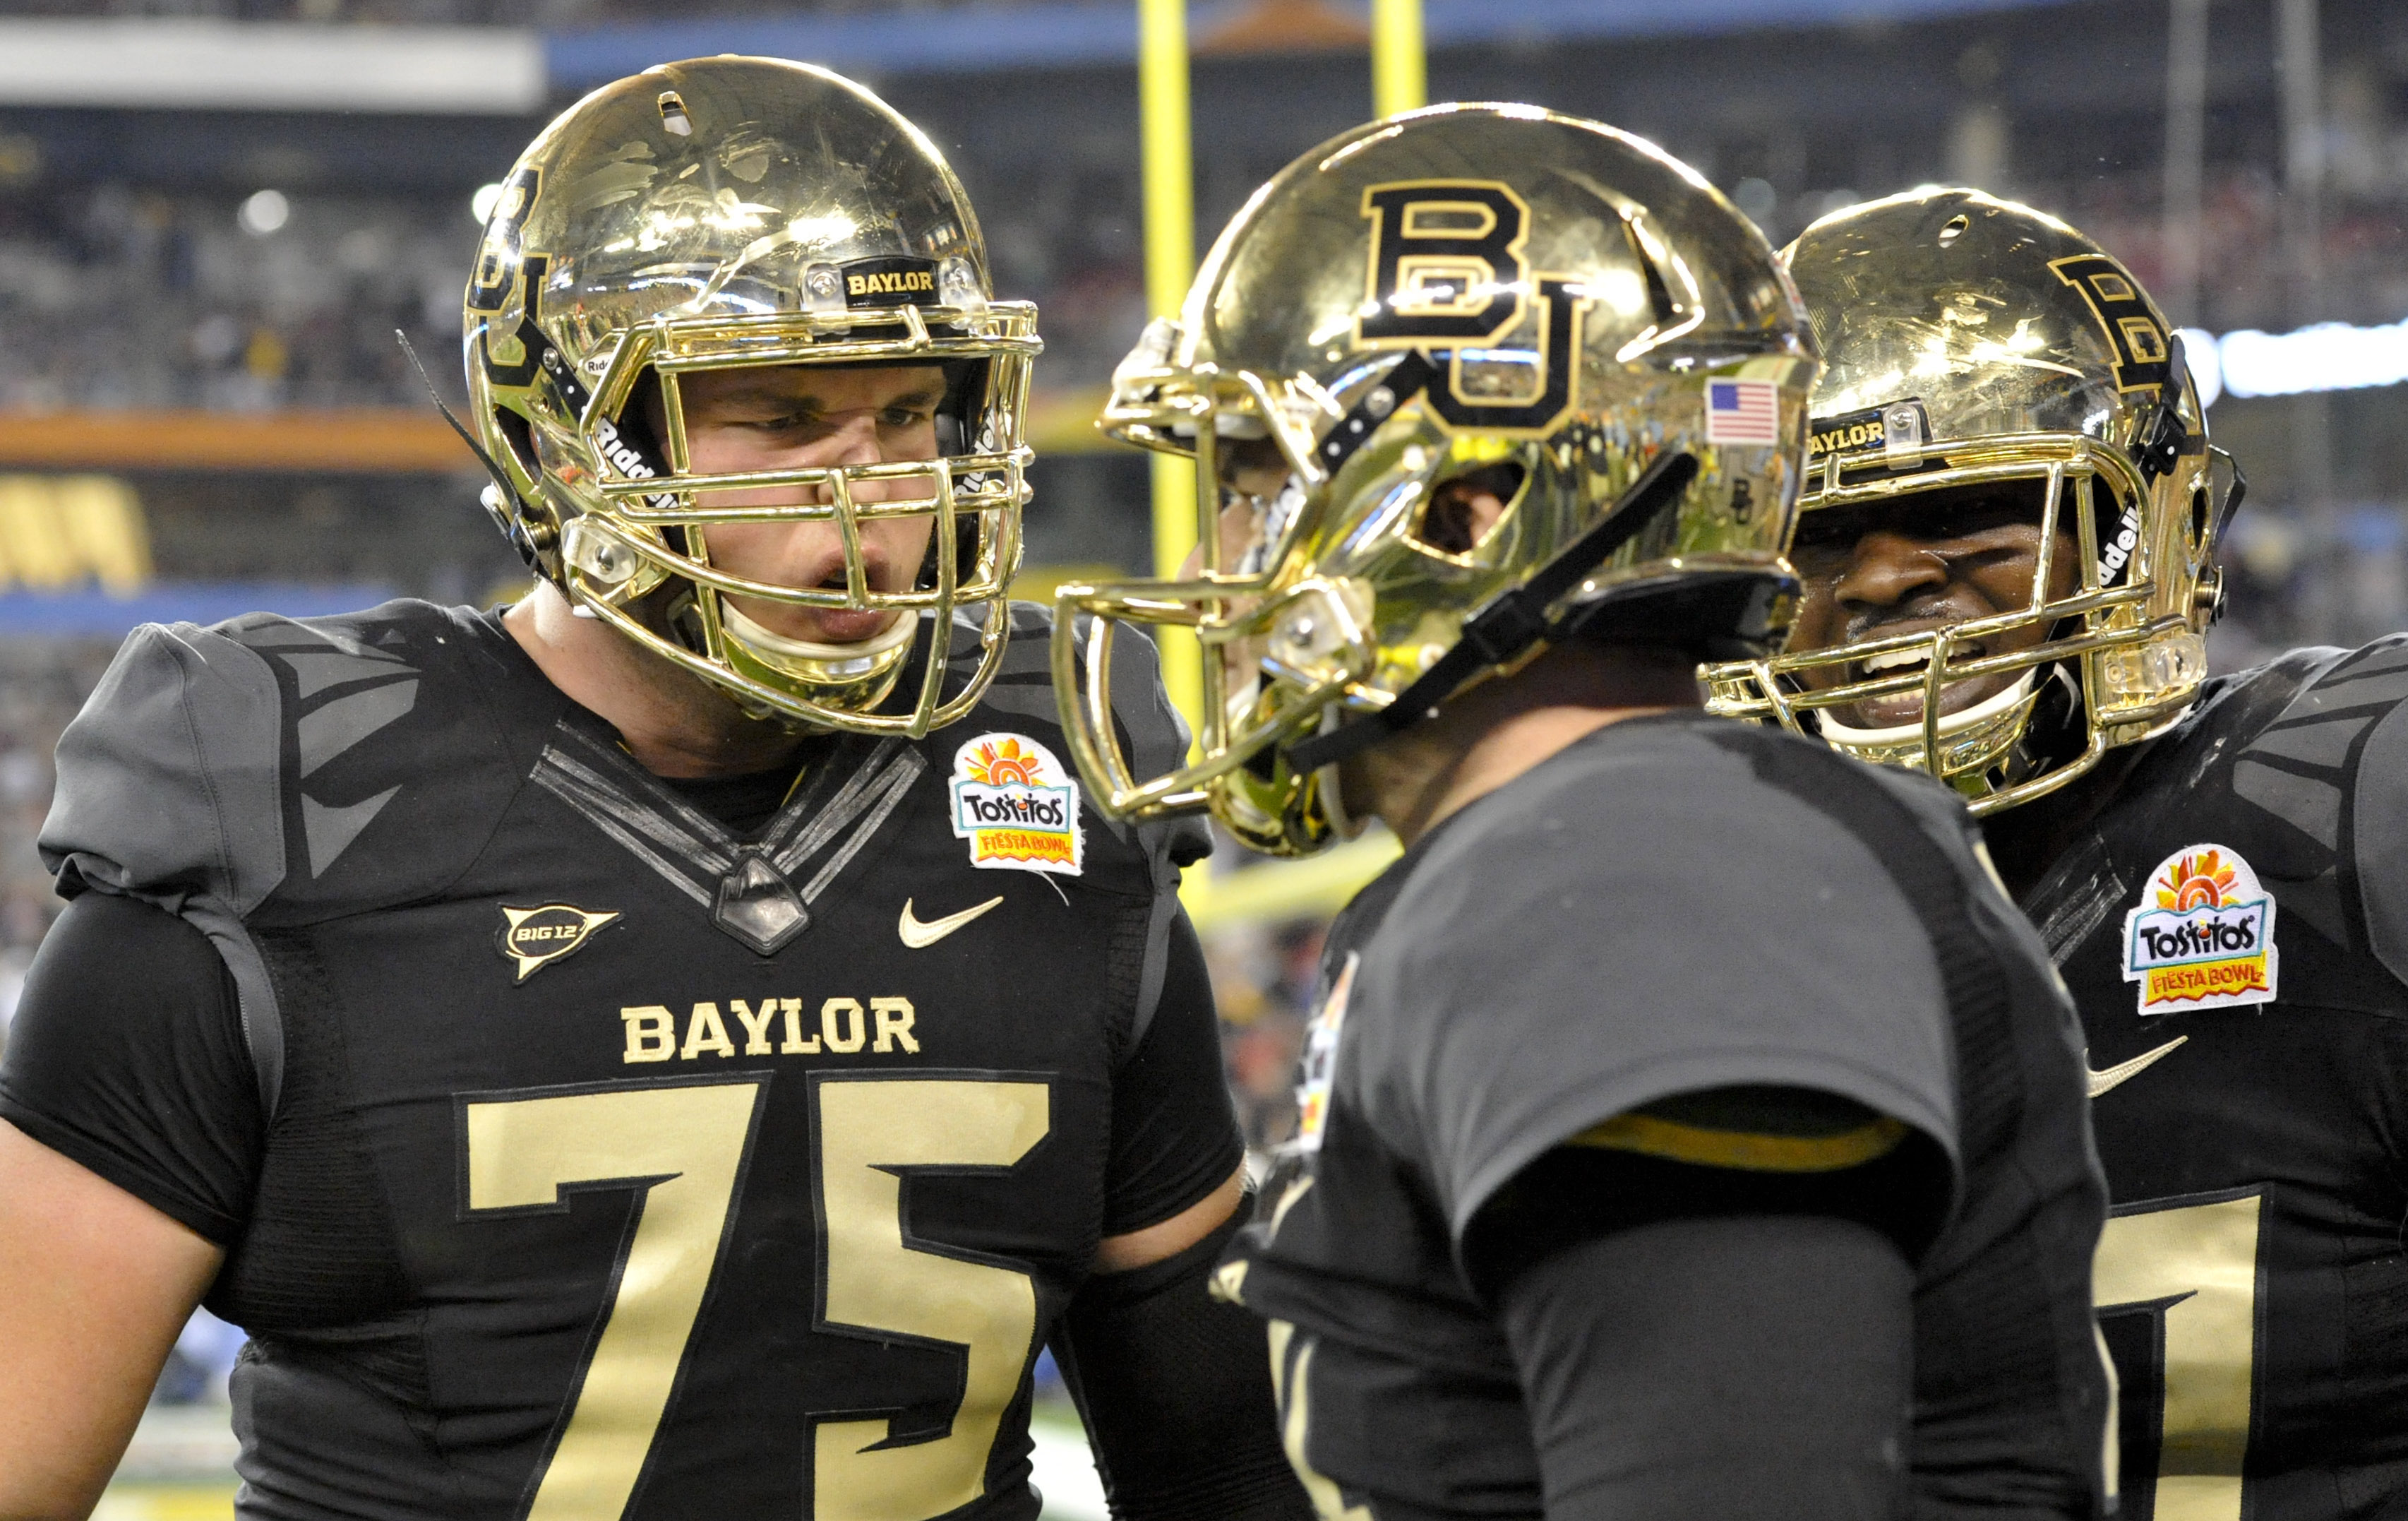 Baylor Bears offensive lineman Troy Baker (75) and offensive lineman Kelvin Palmer (77) congratulate quarterback Bryce Petty (14) after a touchdown during the second quarter against the UCF Knights at University of Phoenix Stadium during the Fiesta Bowl on Jan. 1, 2014 in Glendale, AZ. (Casey Sapio/USA TODAY Sports)